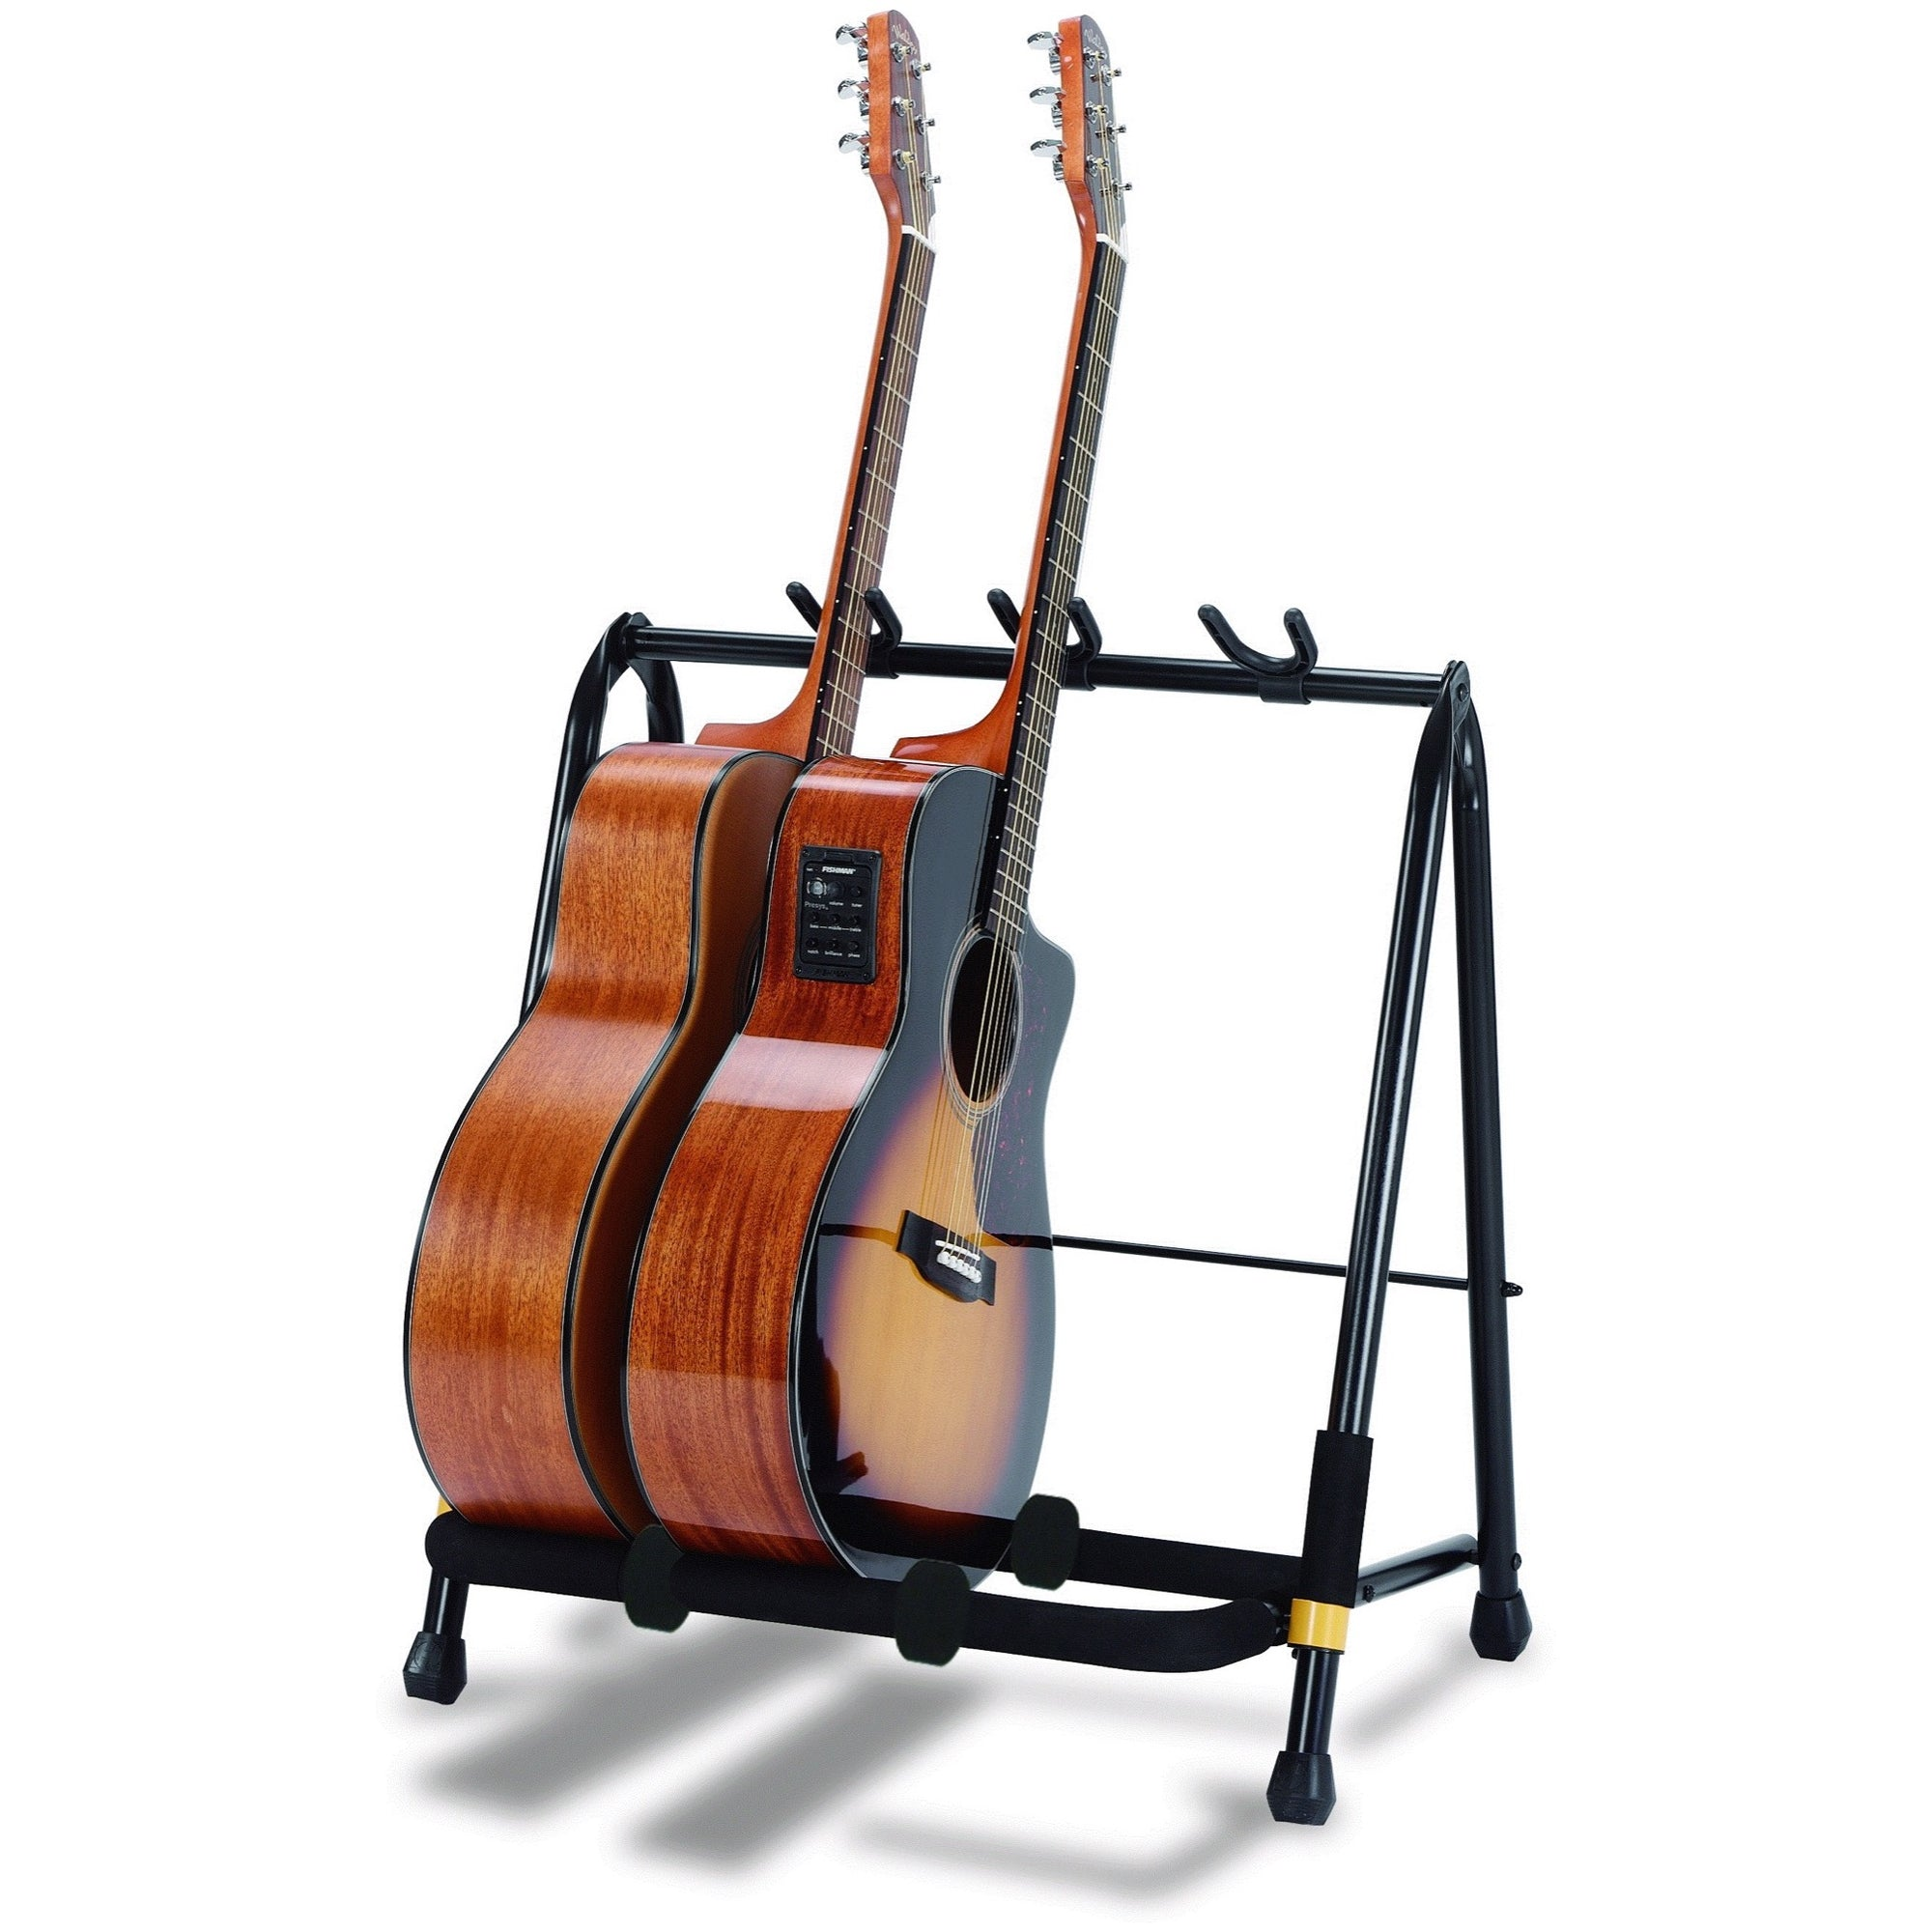 Hercules Stands Guitar Rack, GS523B, 3-Space